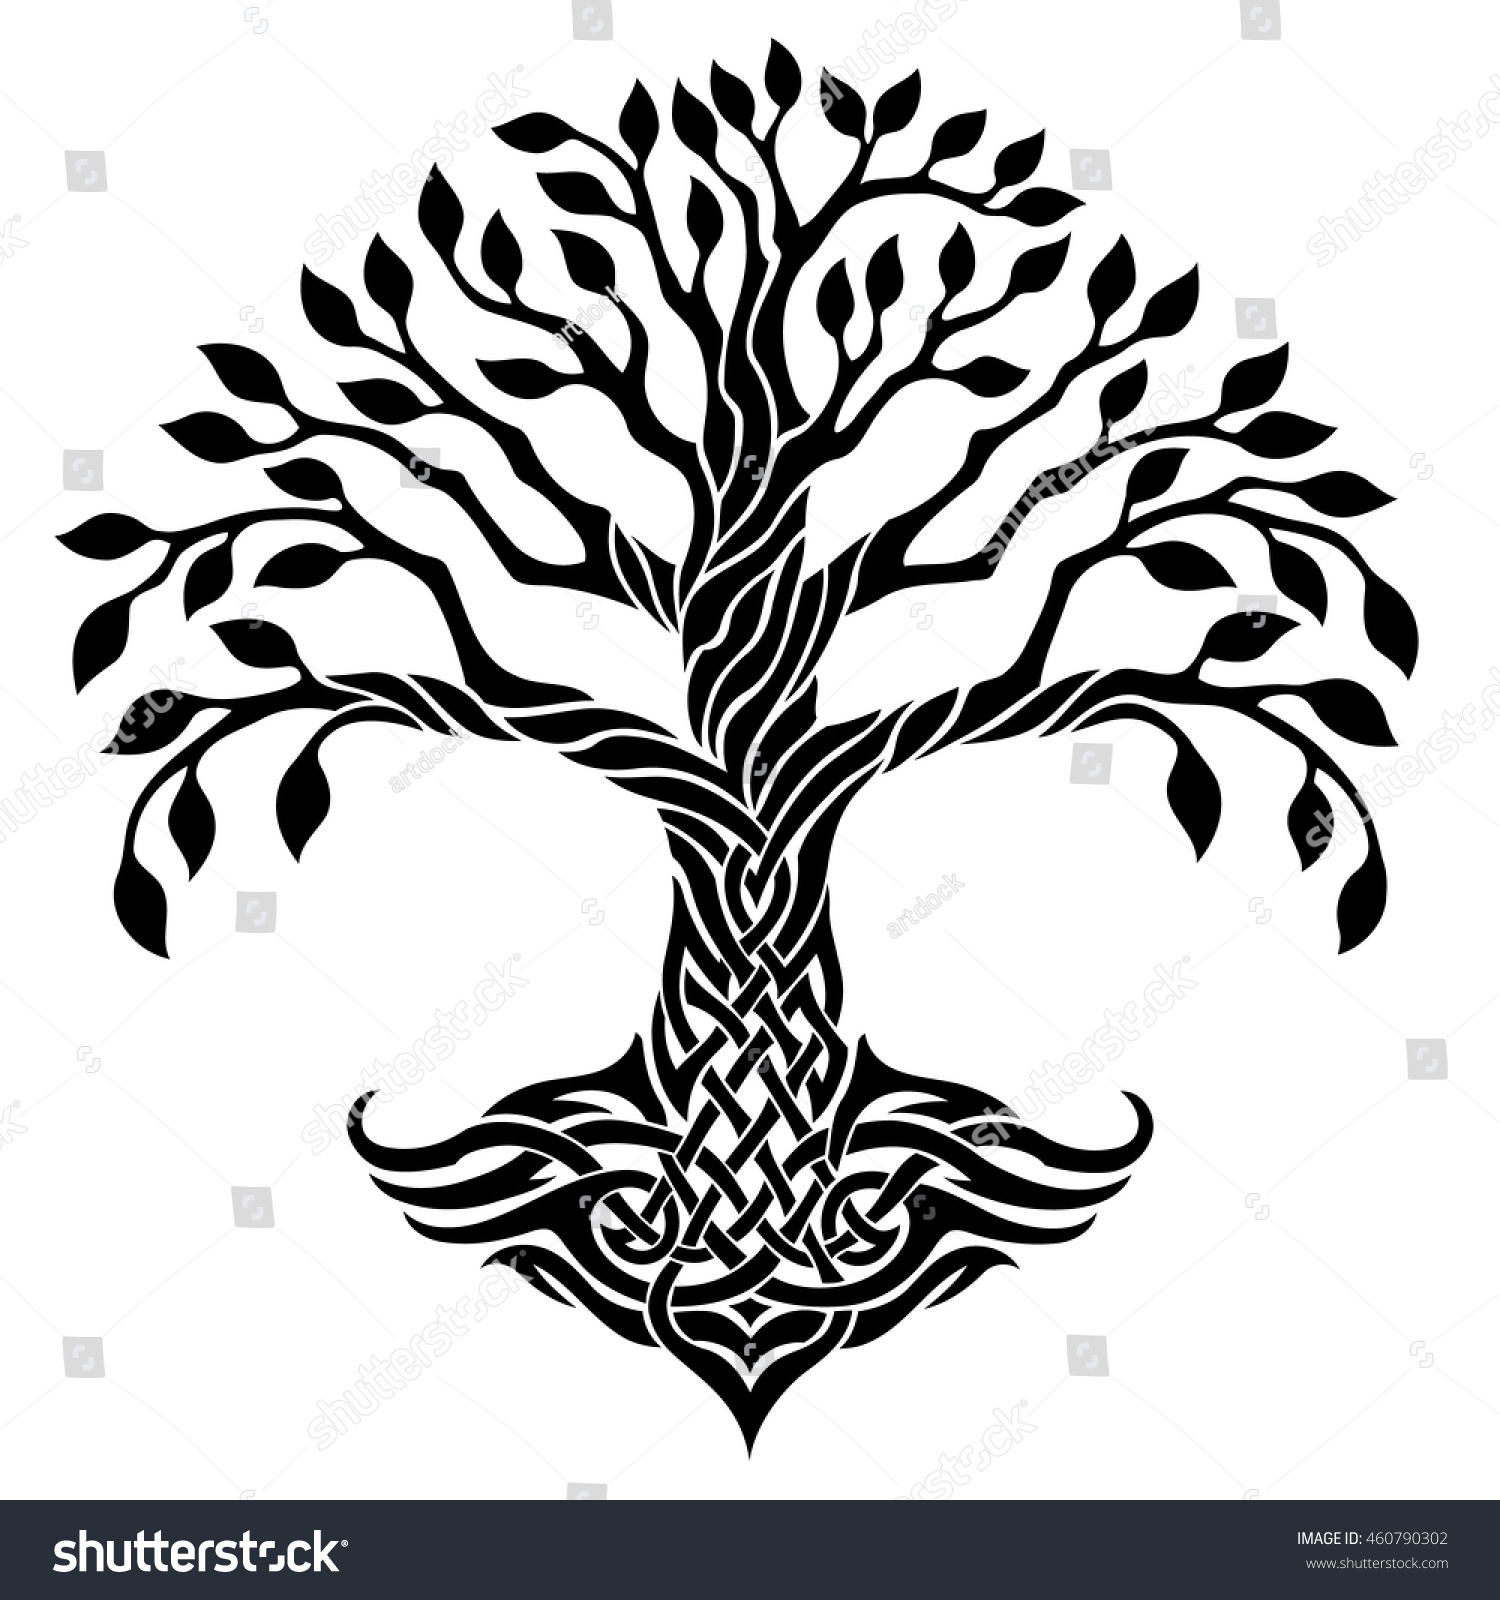 Intertwined Trees Clip Art | www.imgkid.com - The Image ...